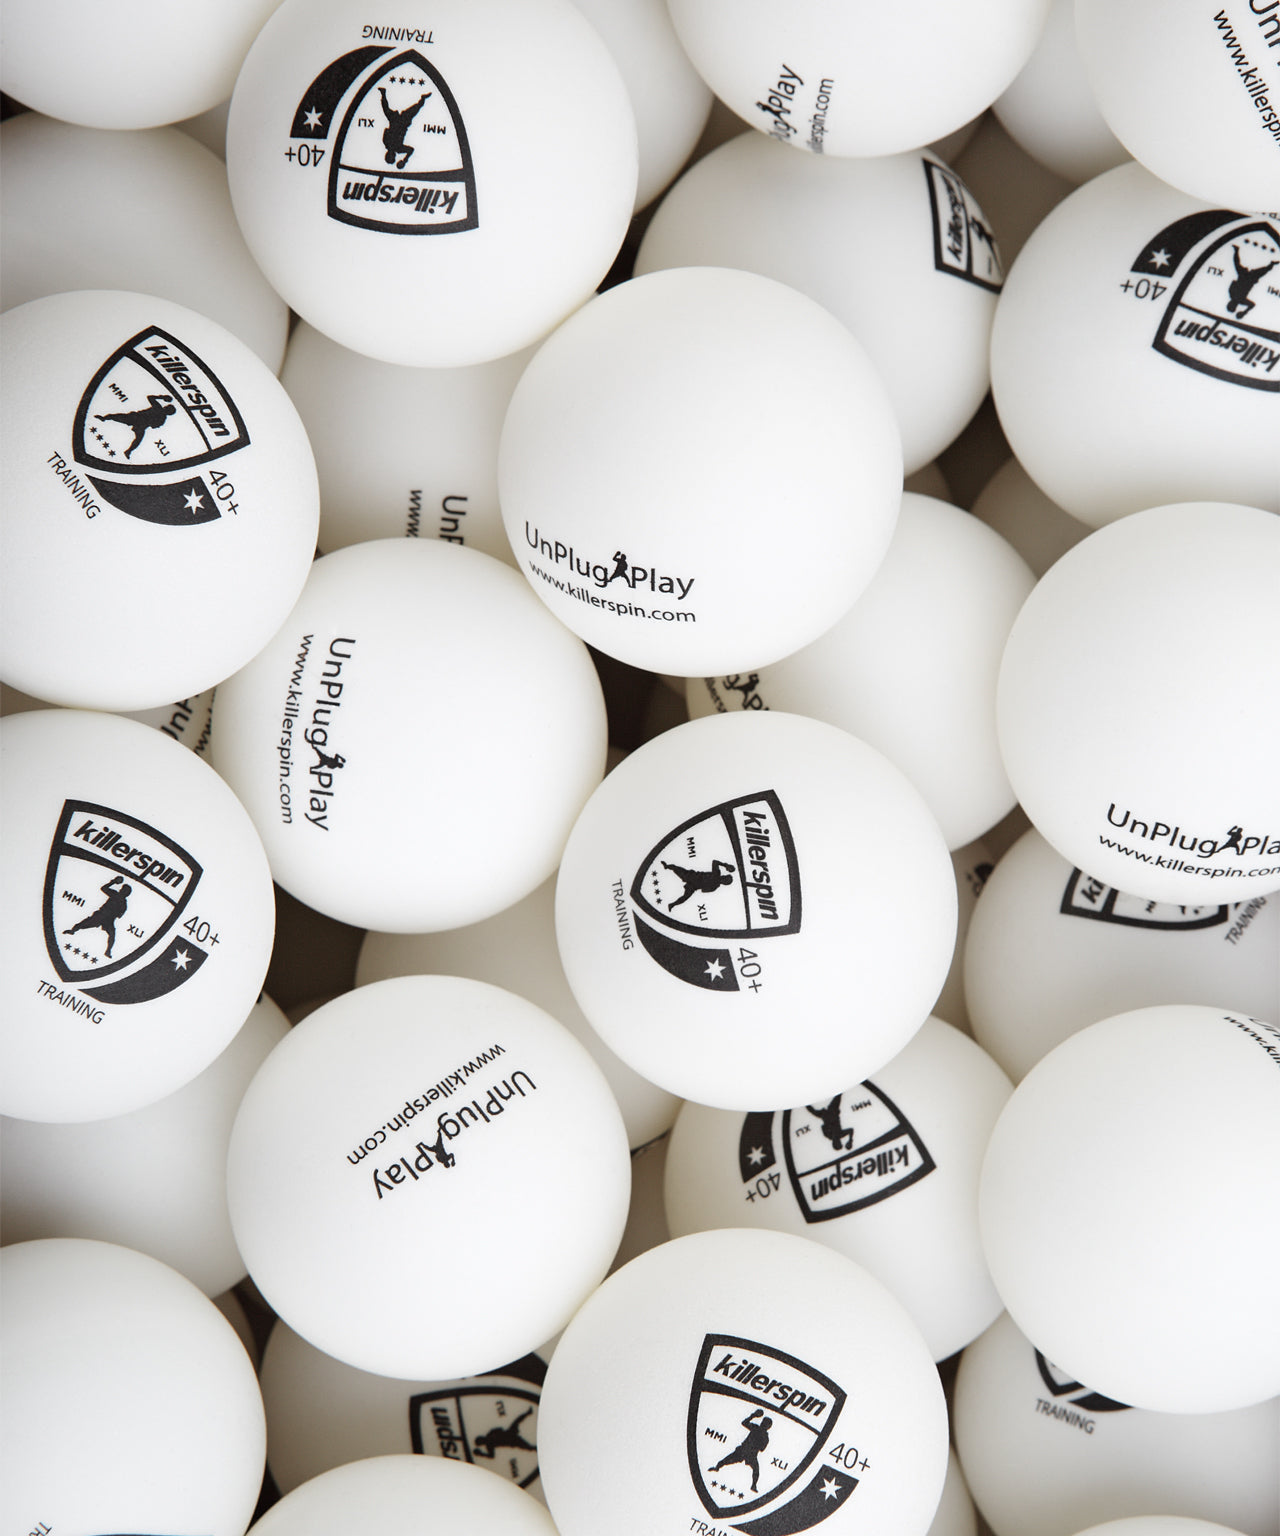 Training Balls 40+ (White) - 25 pack